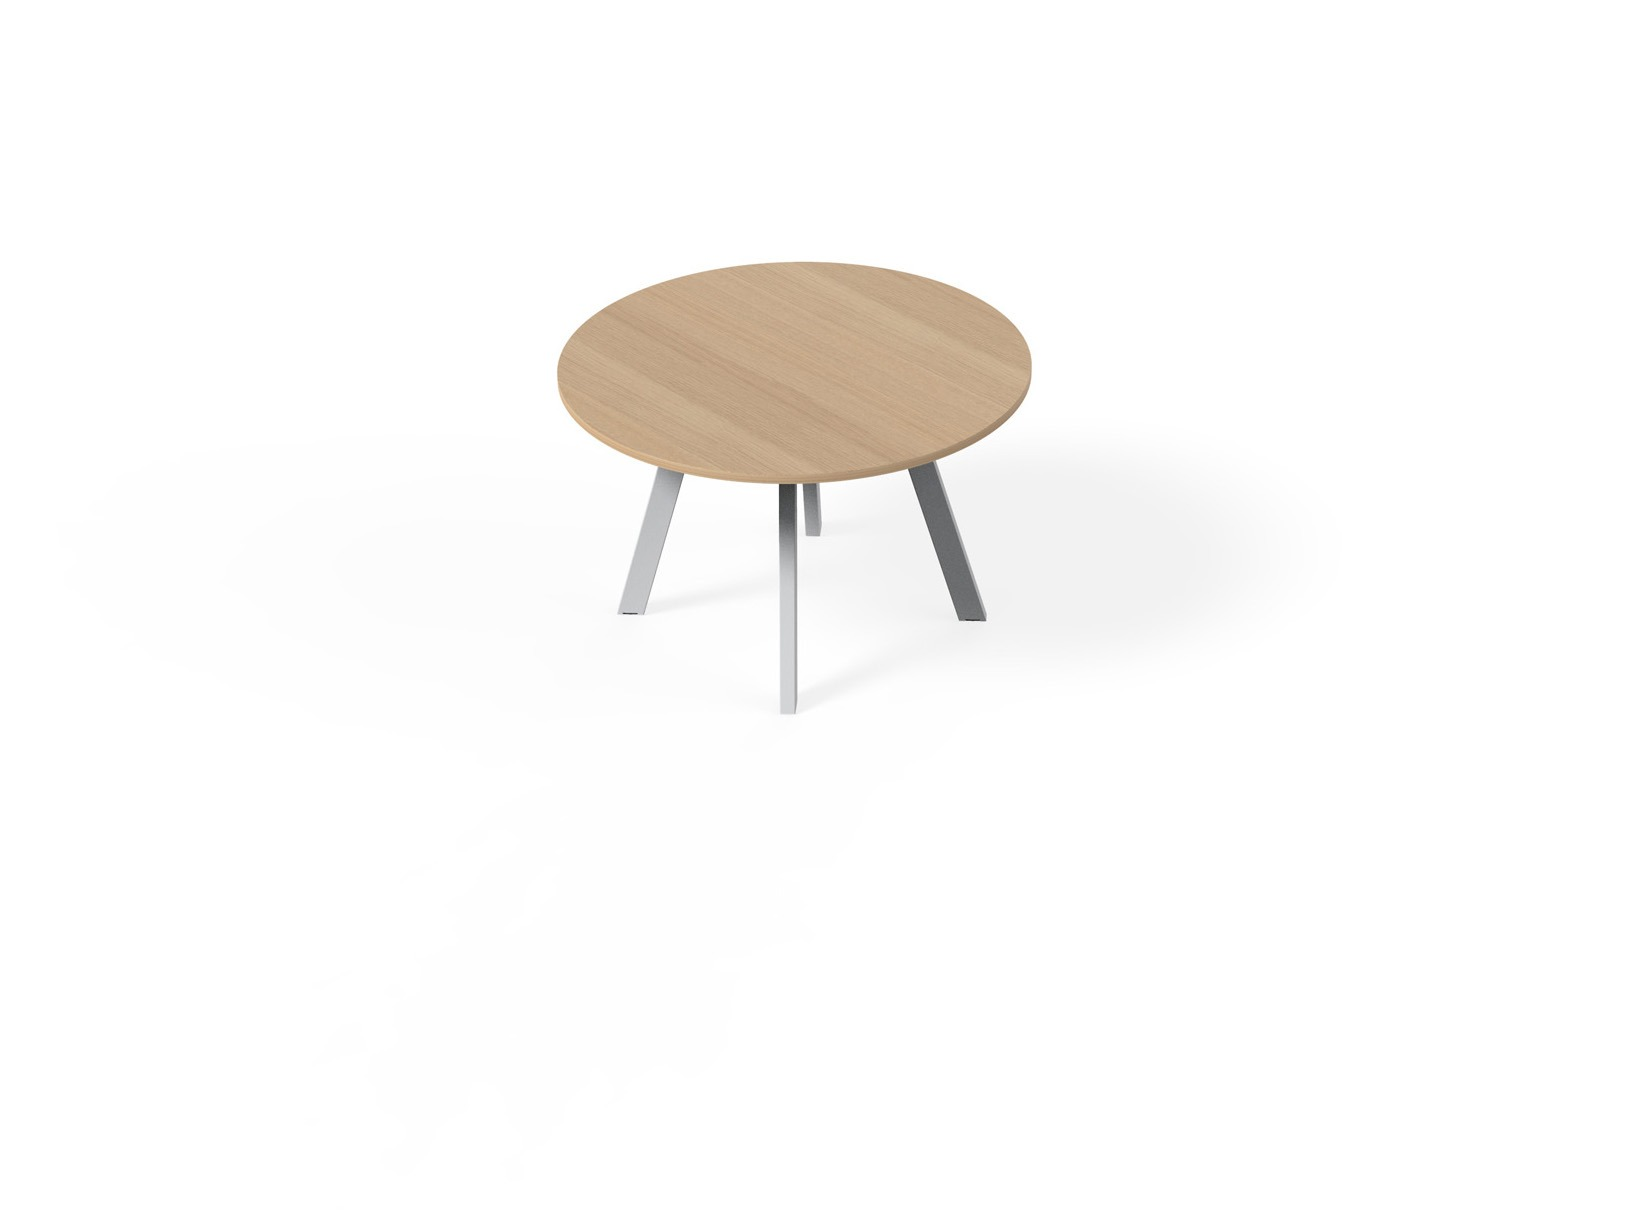 Rounded | Robberechts